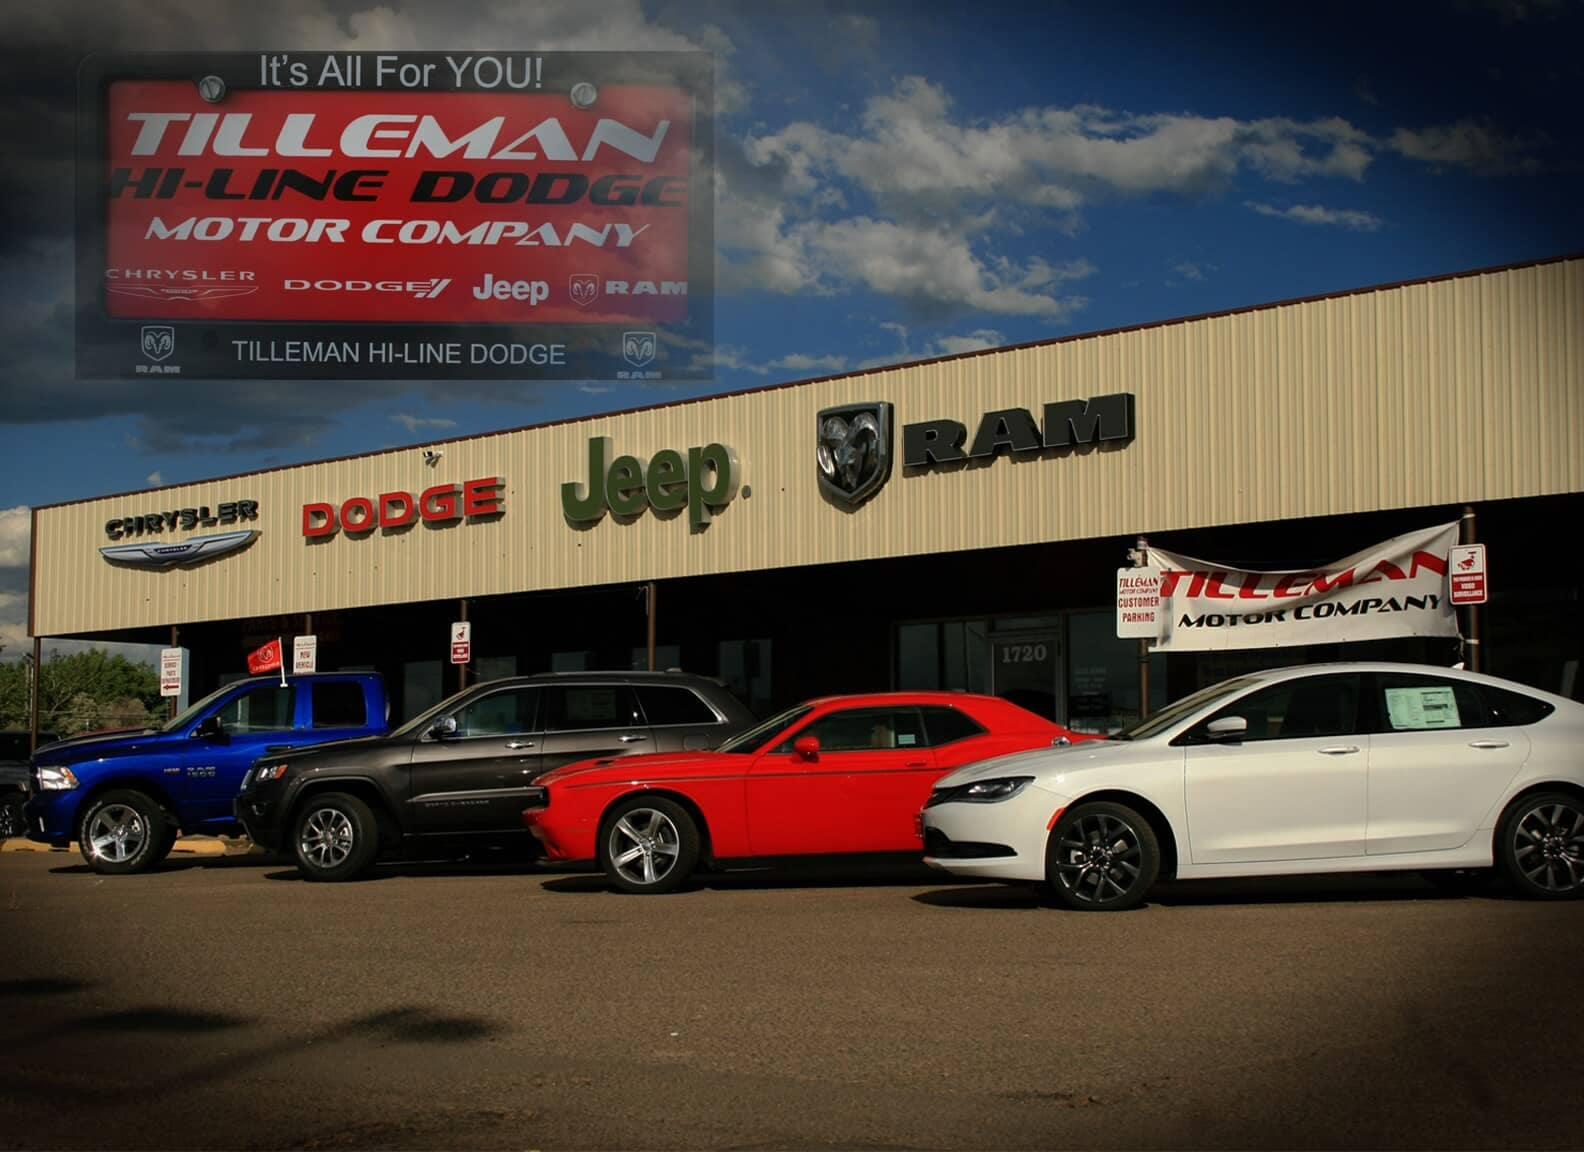 Tilleman Motor Company dealership